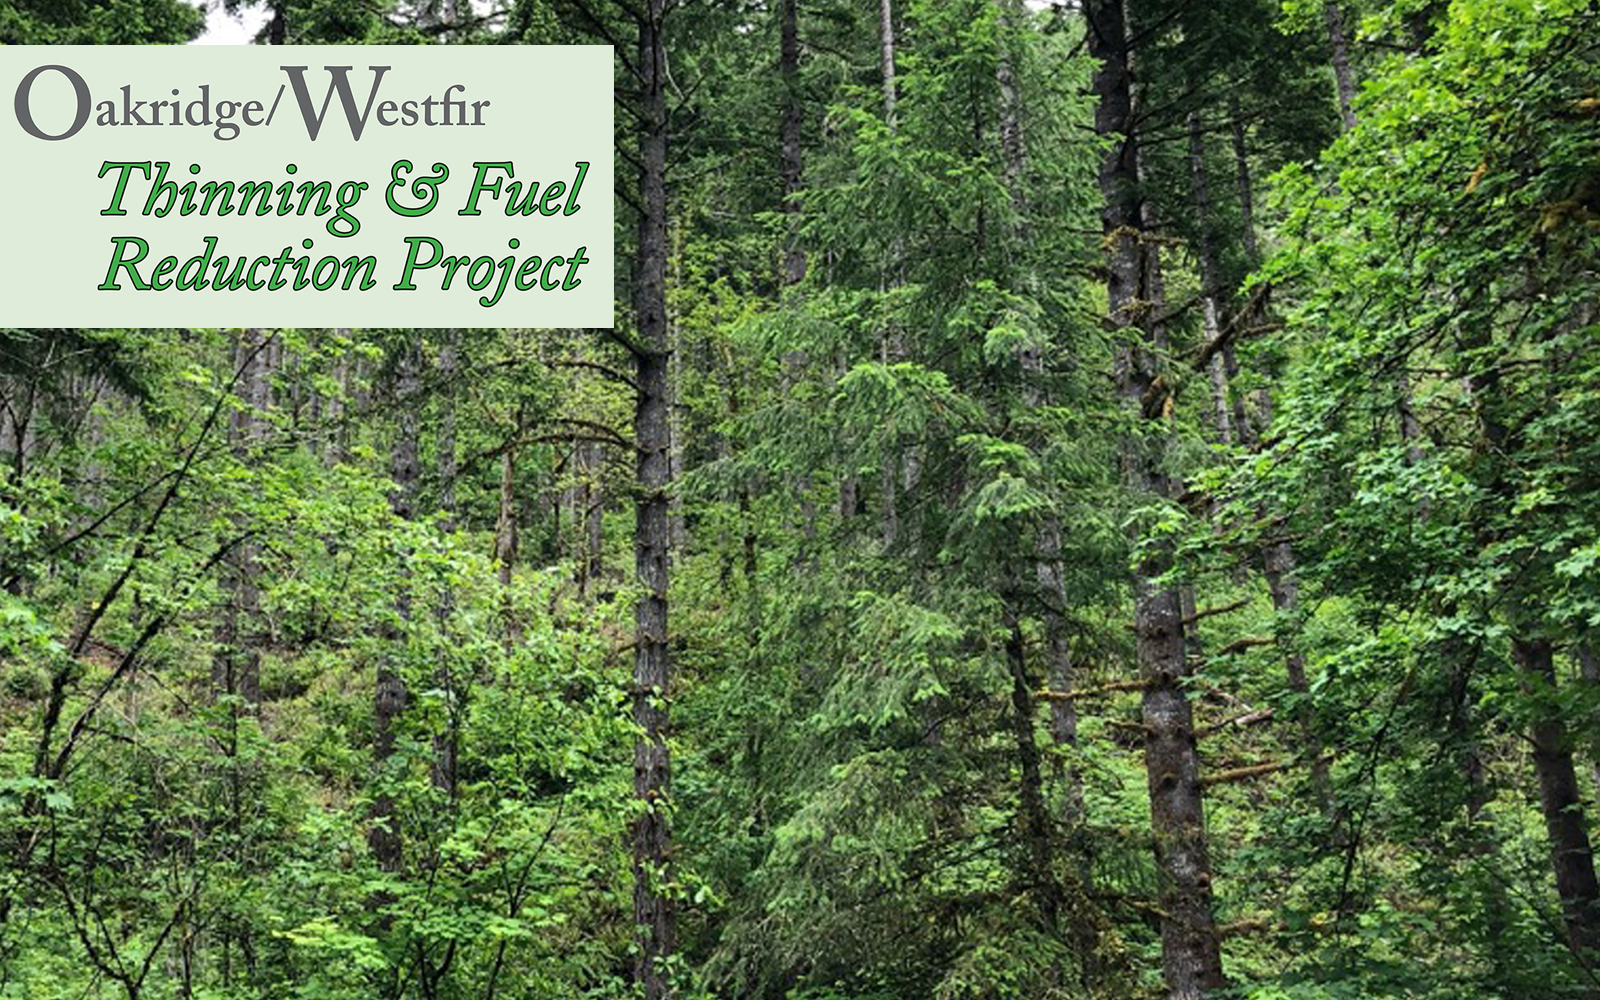 BLOG: Reporting Back from the Oakridge/Westfir Field Visit